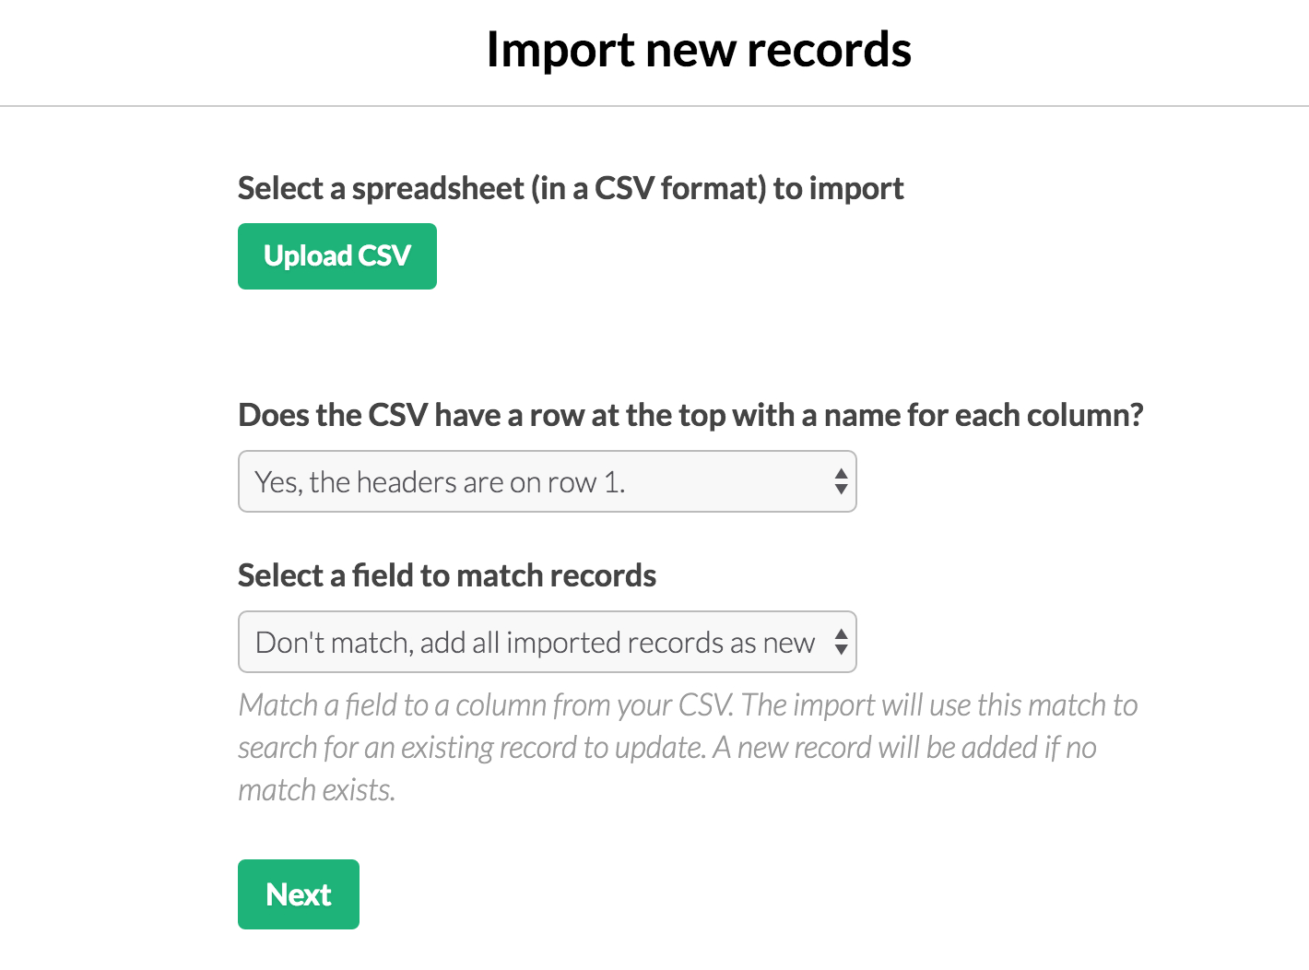 Microsoft Works Spreadsheet Tutorial Regarding Import Records – Knack